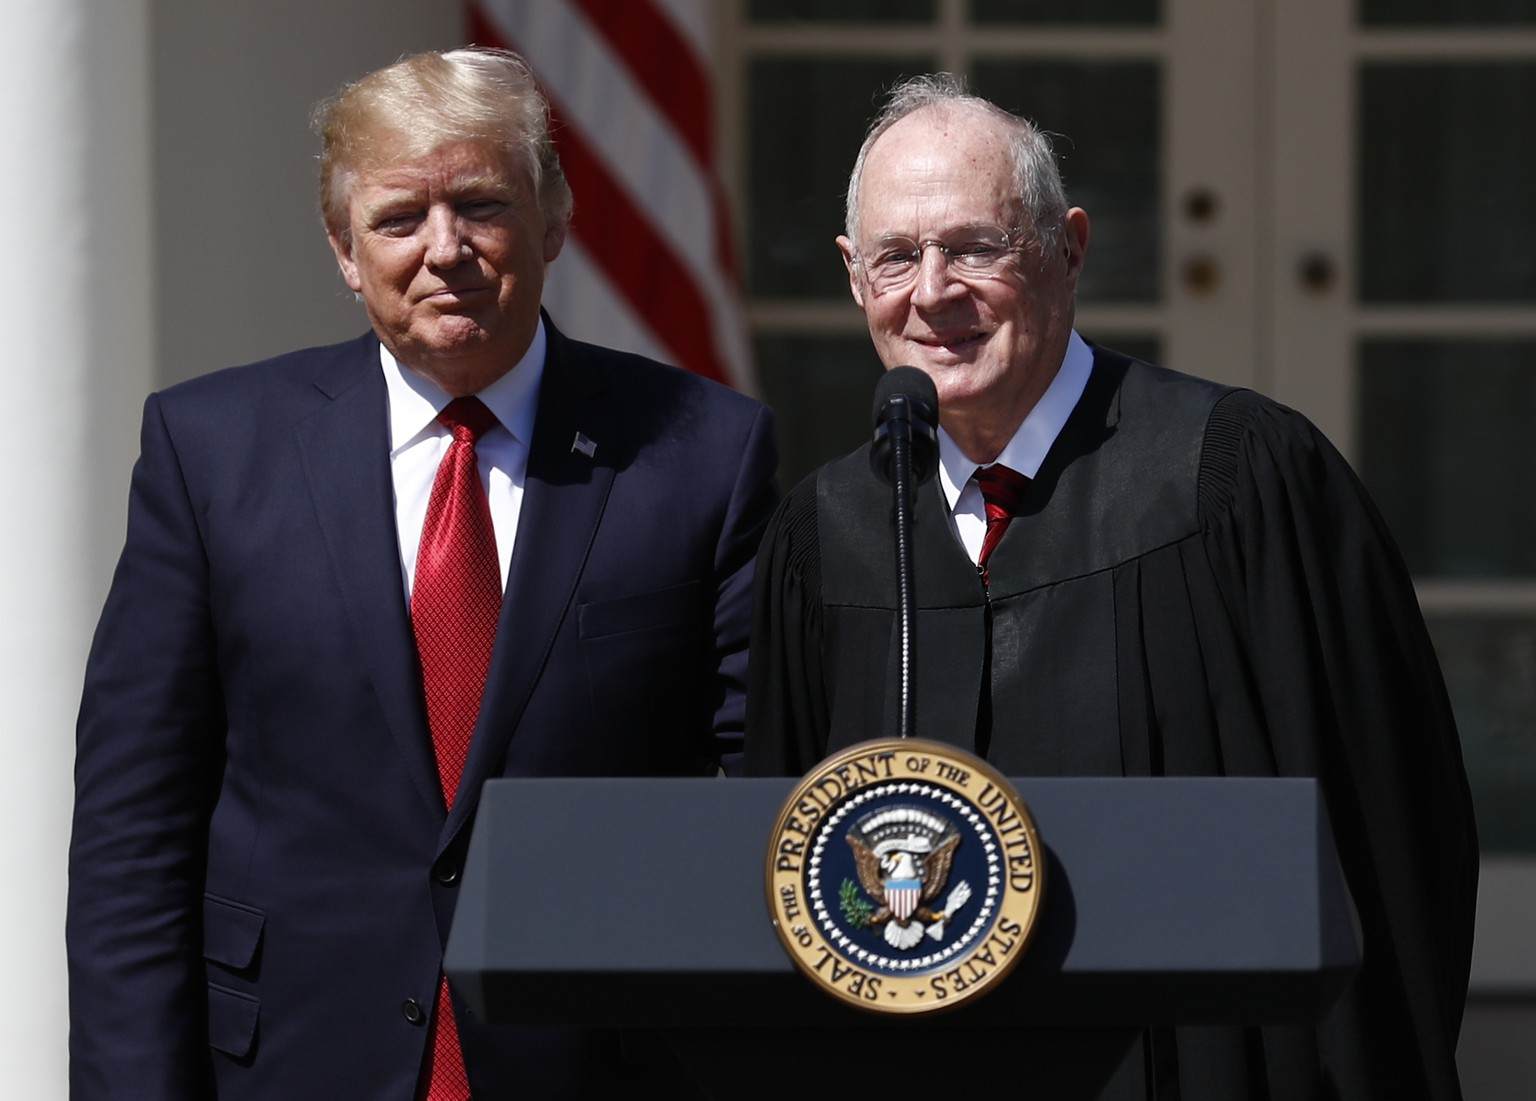 FILE - In this April 10, 2017, file photo, President Donald Trump, left, and Supreme Court Justice Anthony Kennedy participate in a public swearing-in ceremony for Justice Neil Gorsuch in the Rose Garden of the White House White House in Washington. As one justice settles into his new job at the Supreme Court, is another about to leave? Kennedy is so far refusing to comment on speculation that he may soon retire after 29 years on the court. But that hasn't stopped Trump and, obliquely, the Republican senator in charge of high court confirmation hearings from weighing in on the prospect that Kennedy could step down as soon as this spring or summer.  (AP Photo/Carolyn Kaster)